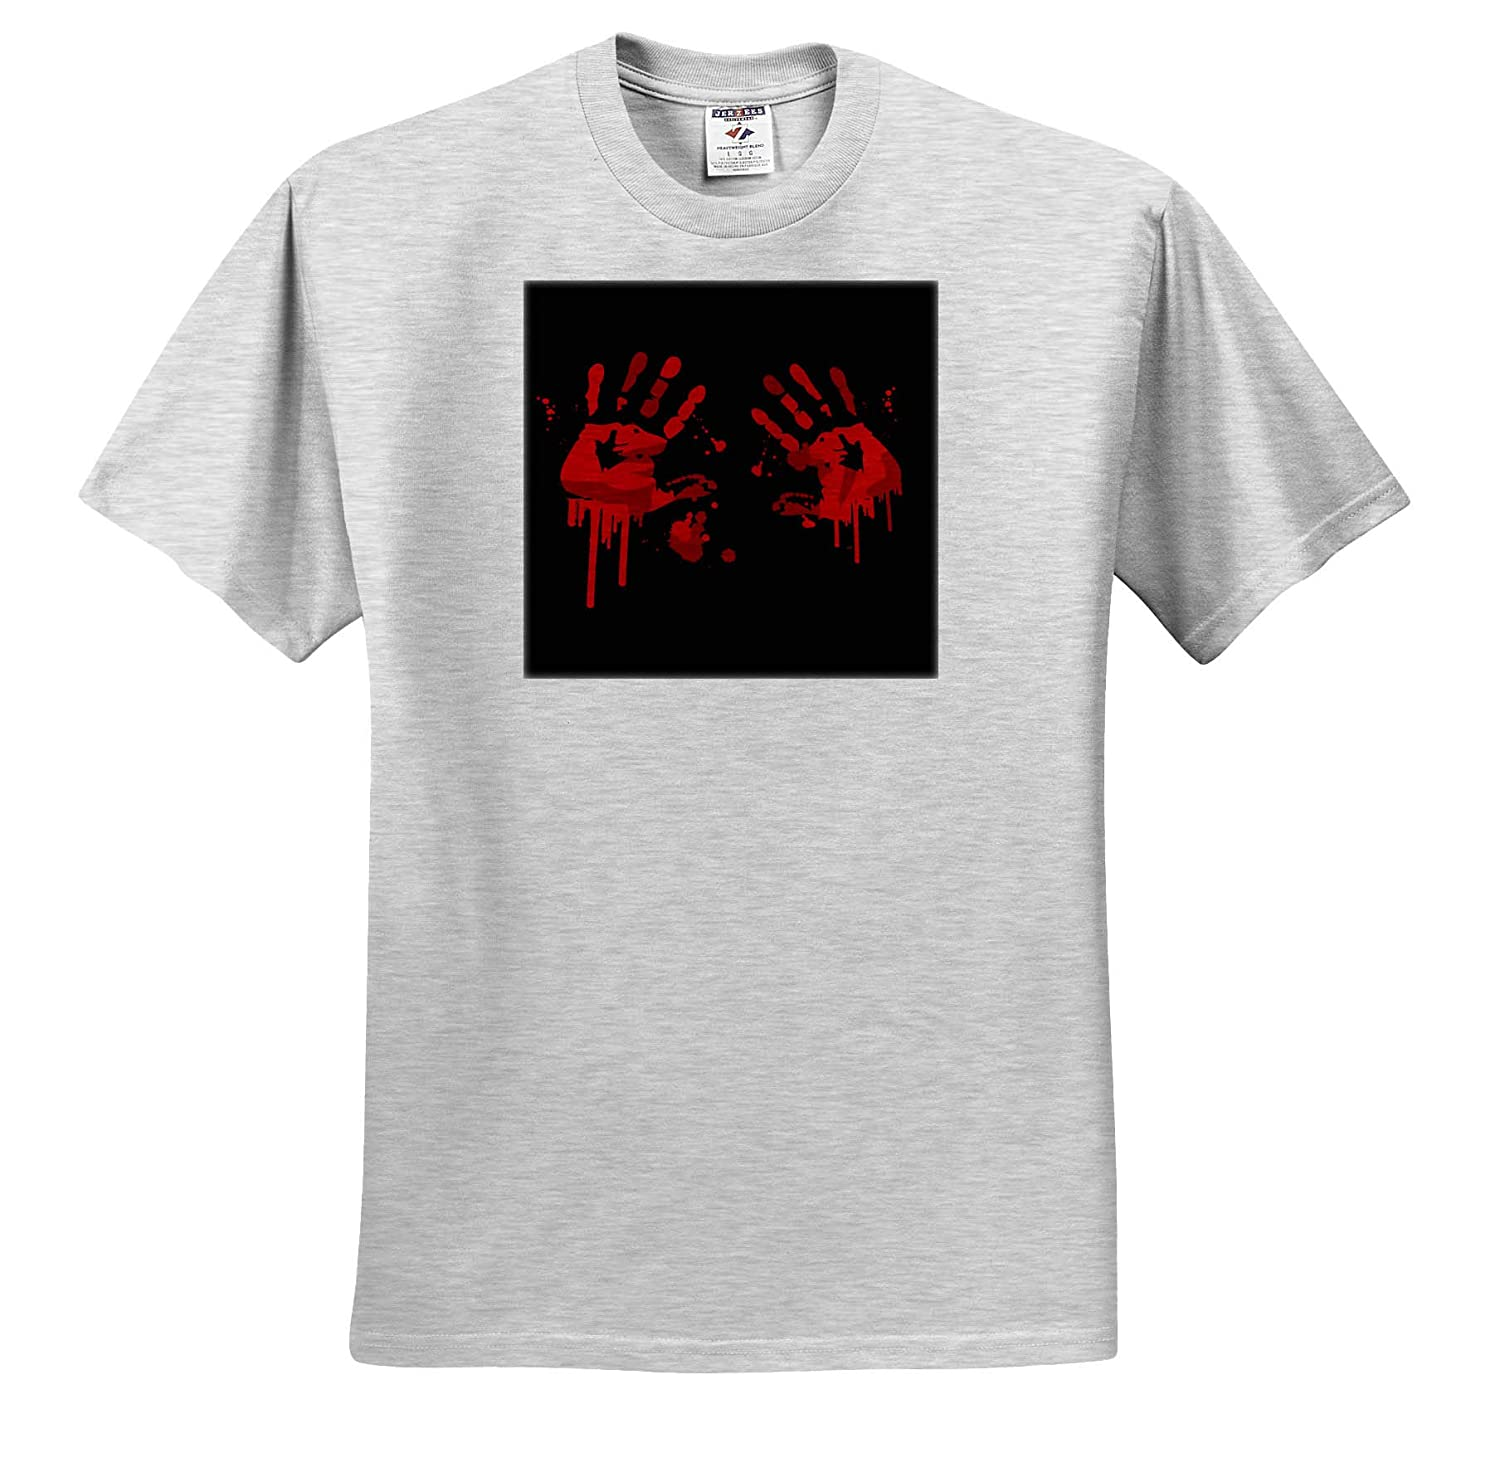 Two Funny Blood Hands for Horror Fans and Lovers Halloween Adult T-Shirt XL 3dRose Sven Herkenrath Funny ts/_318912